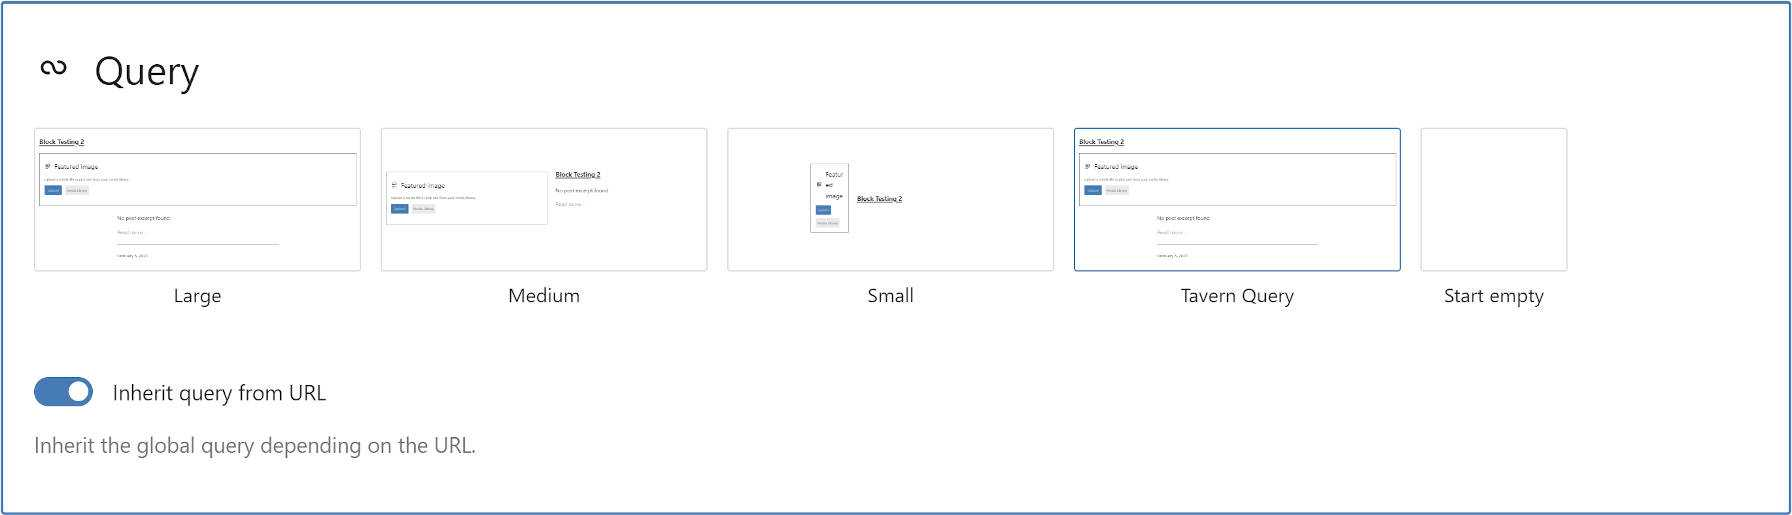 Initial state of the query block when the user first inserts into a post with template options.